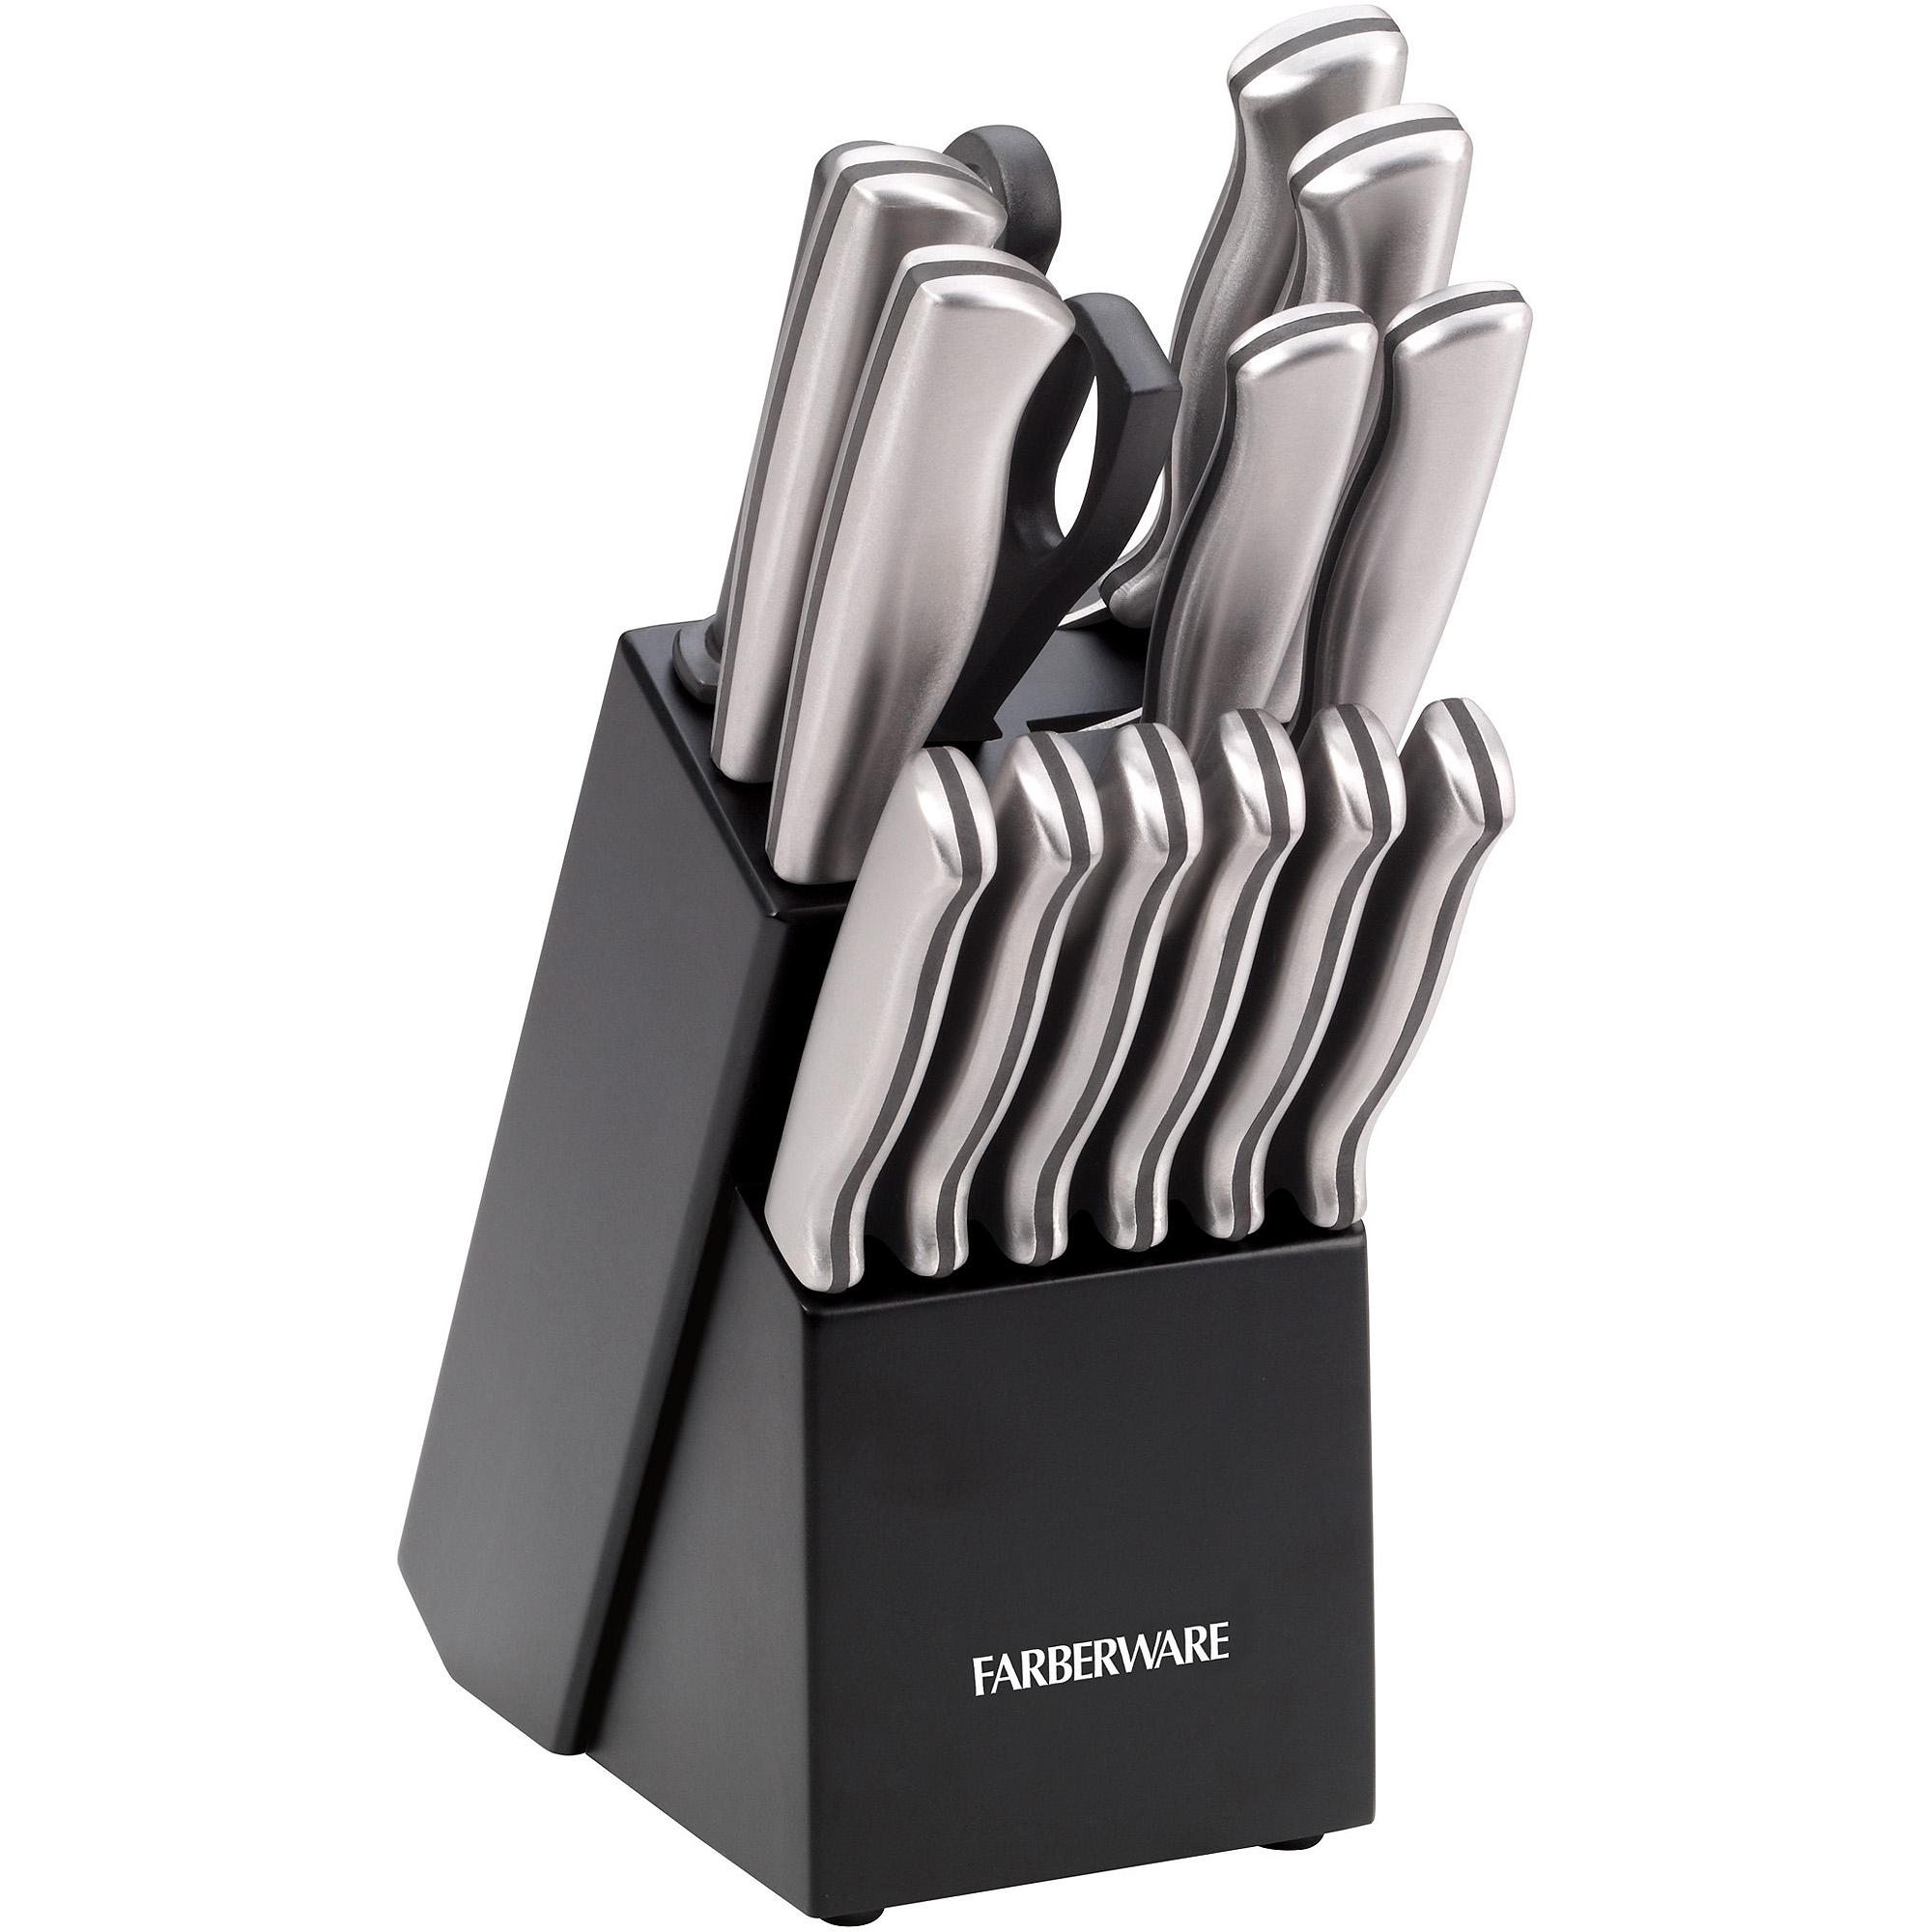 Chic hampton forge knife set for kitchen with hampton forge cutlery set